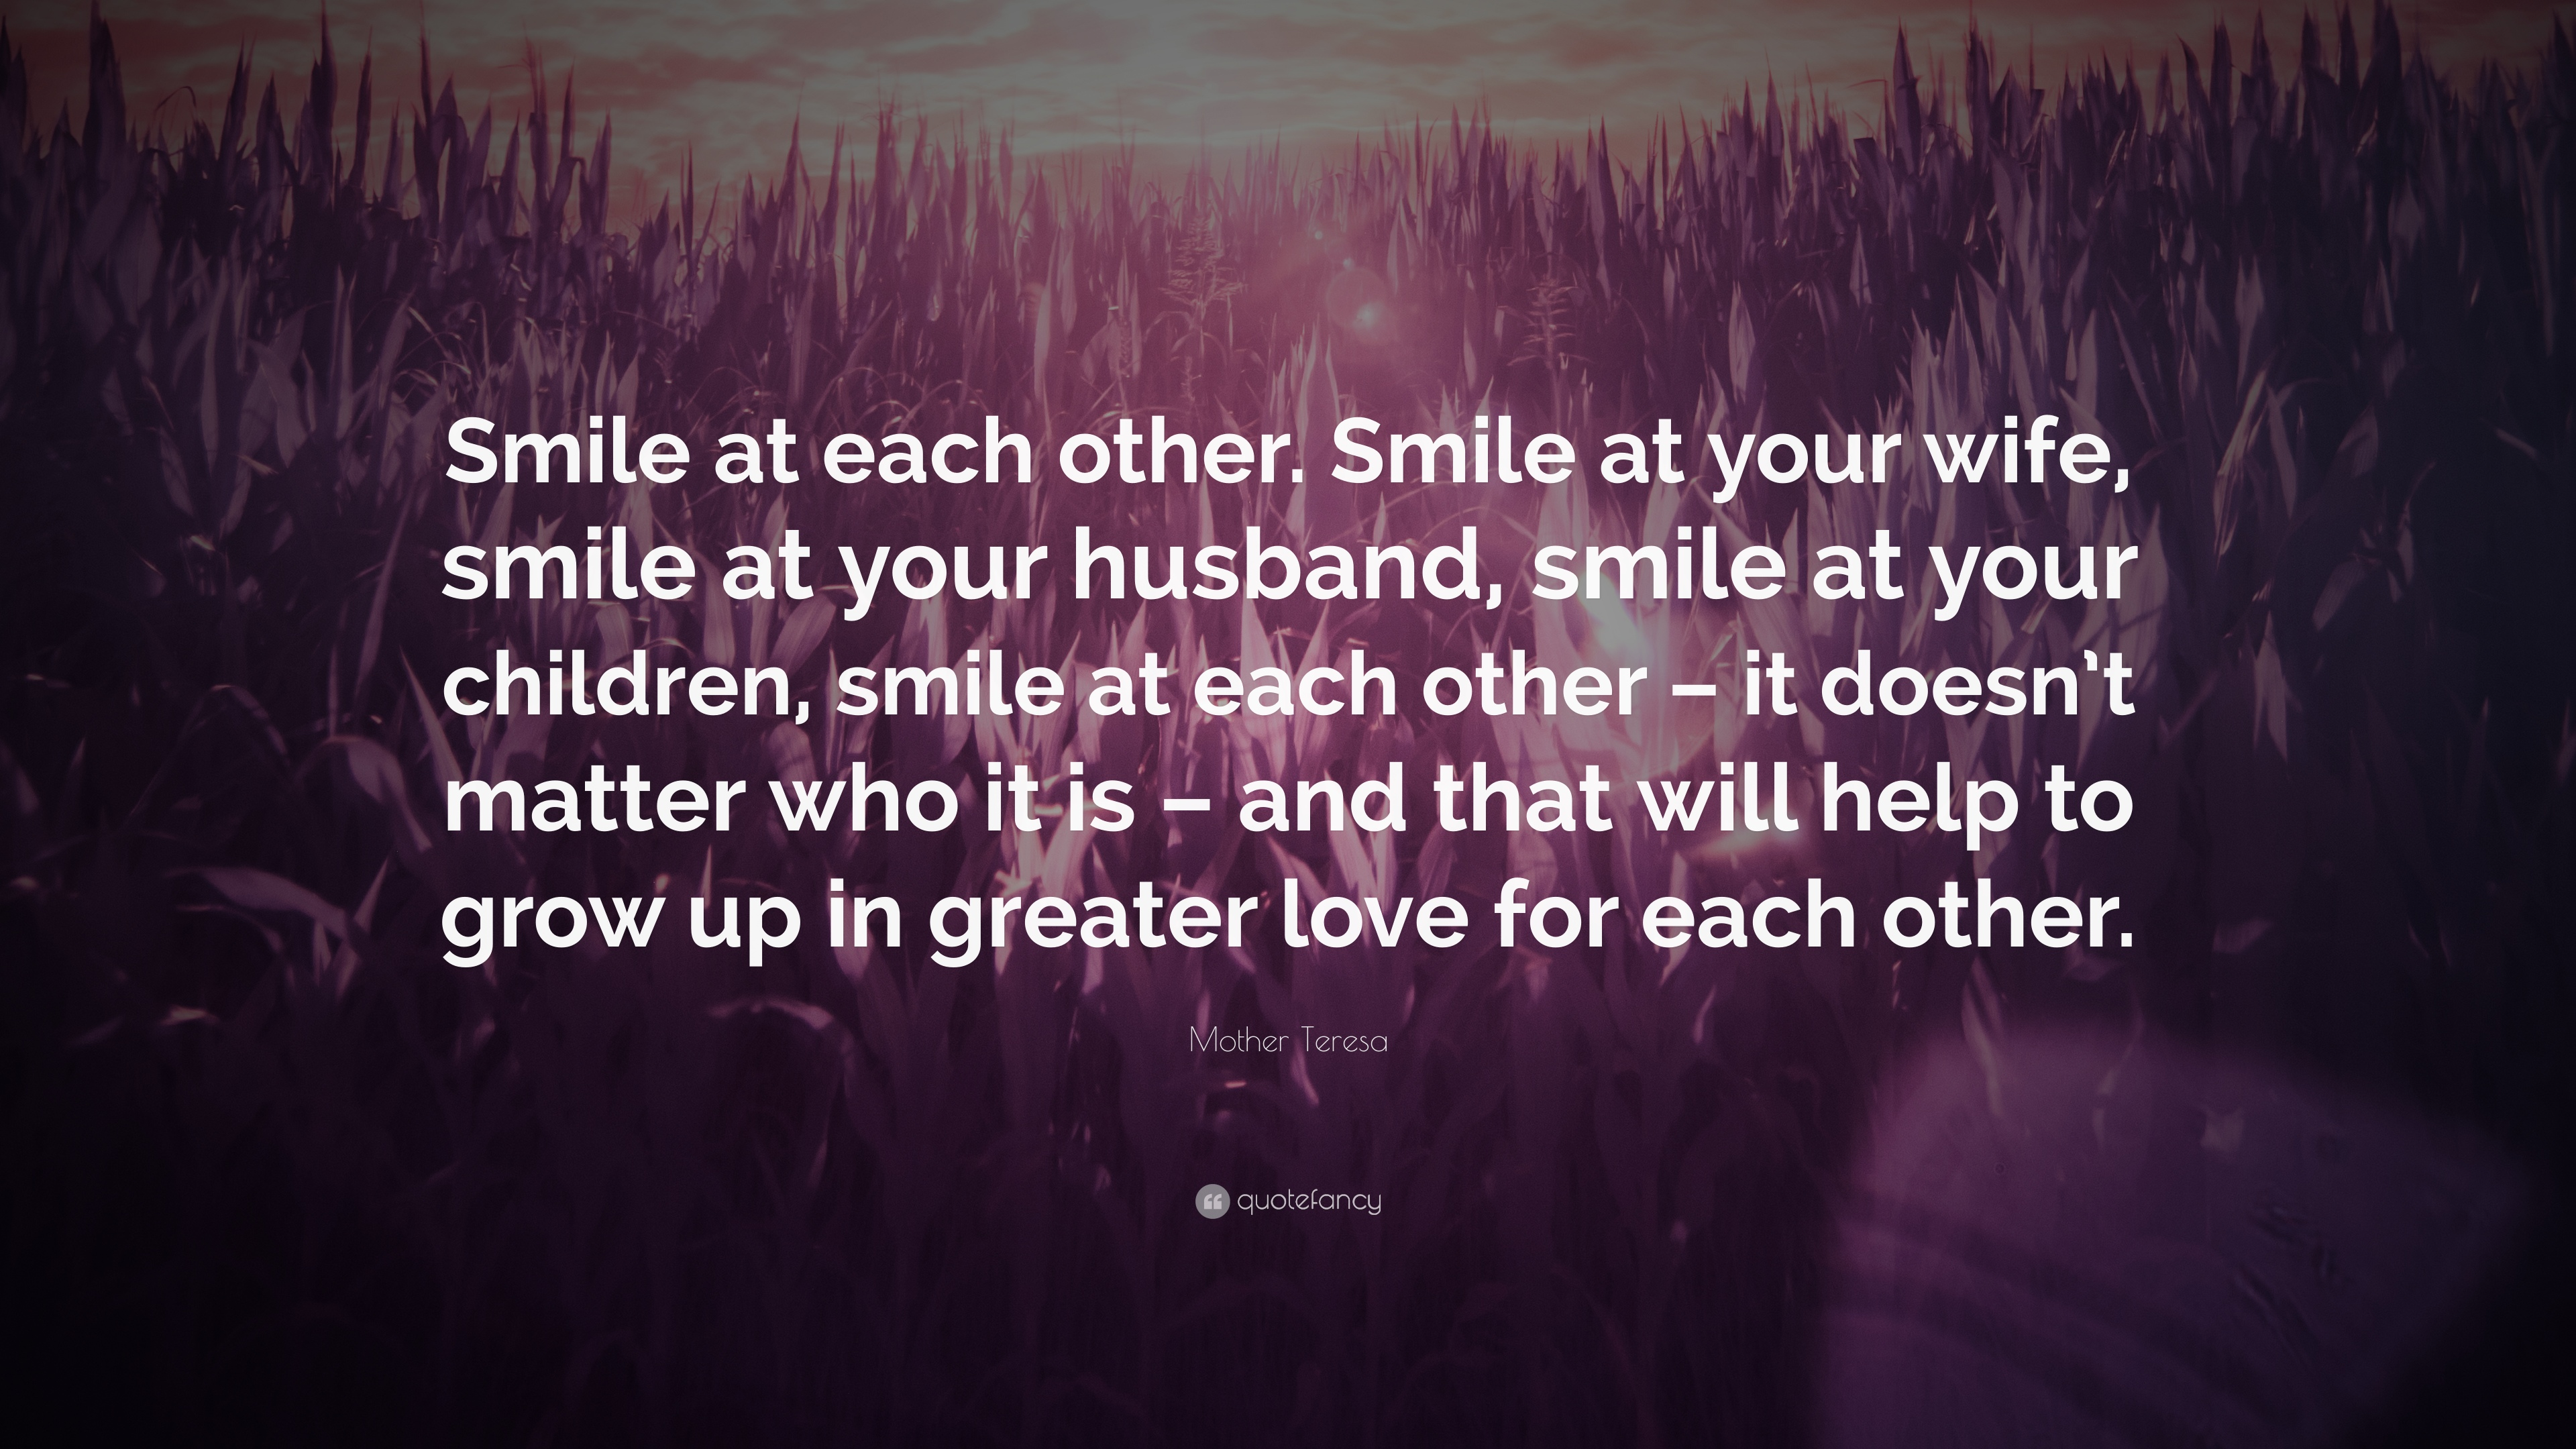 Mother Teresa Quote Smile At Each Other Smile At Your Wife Smile